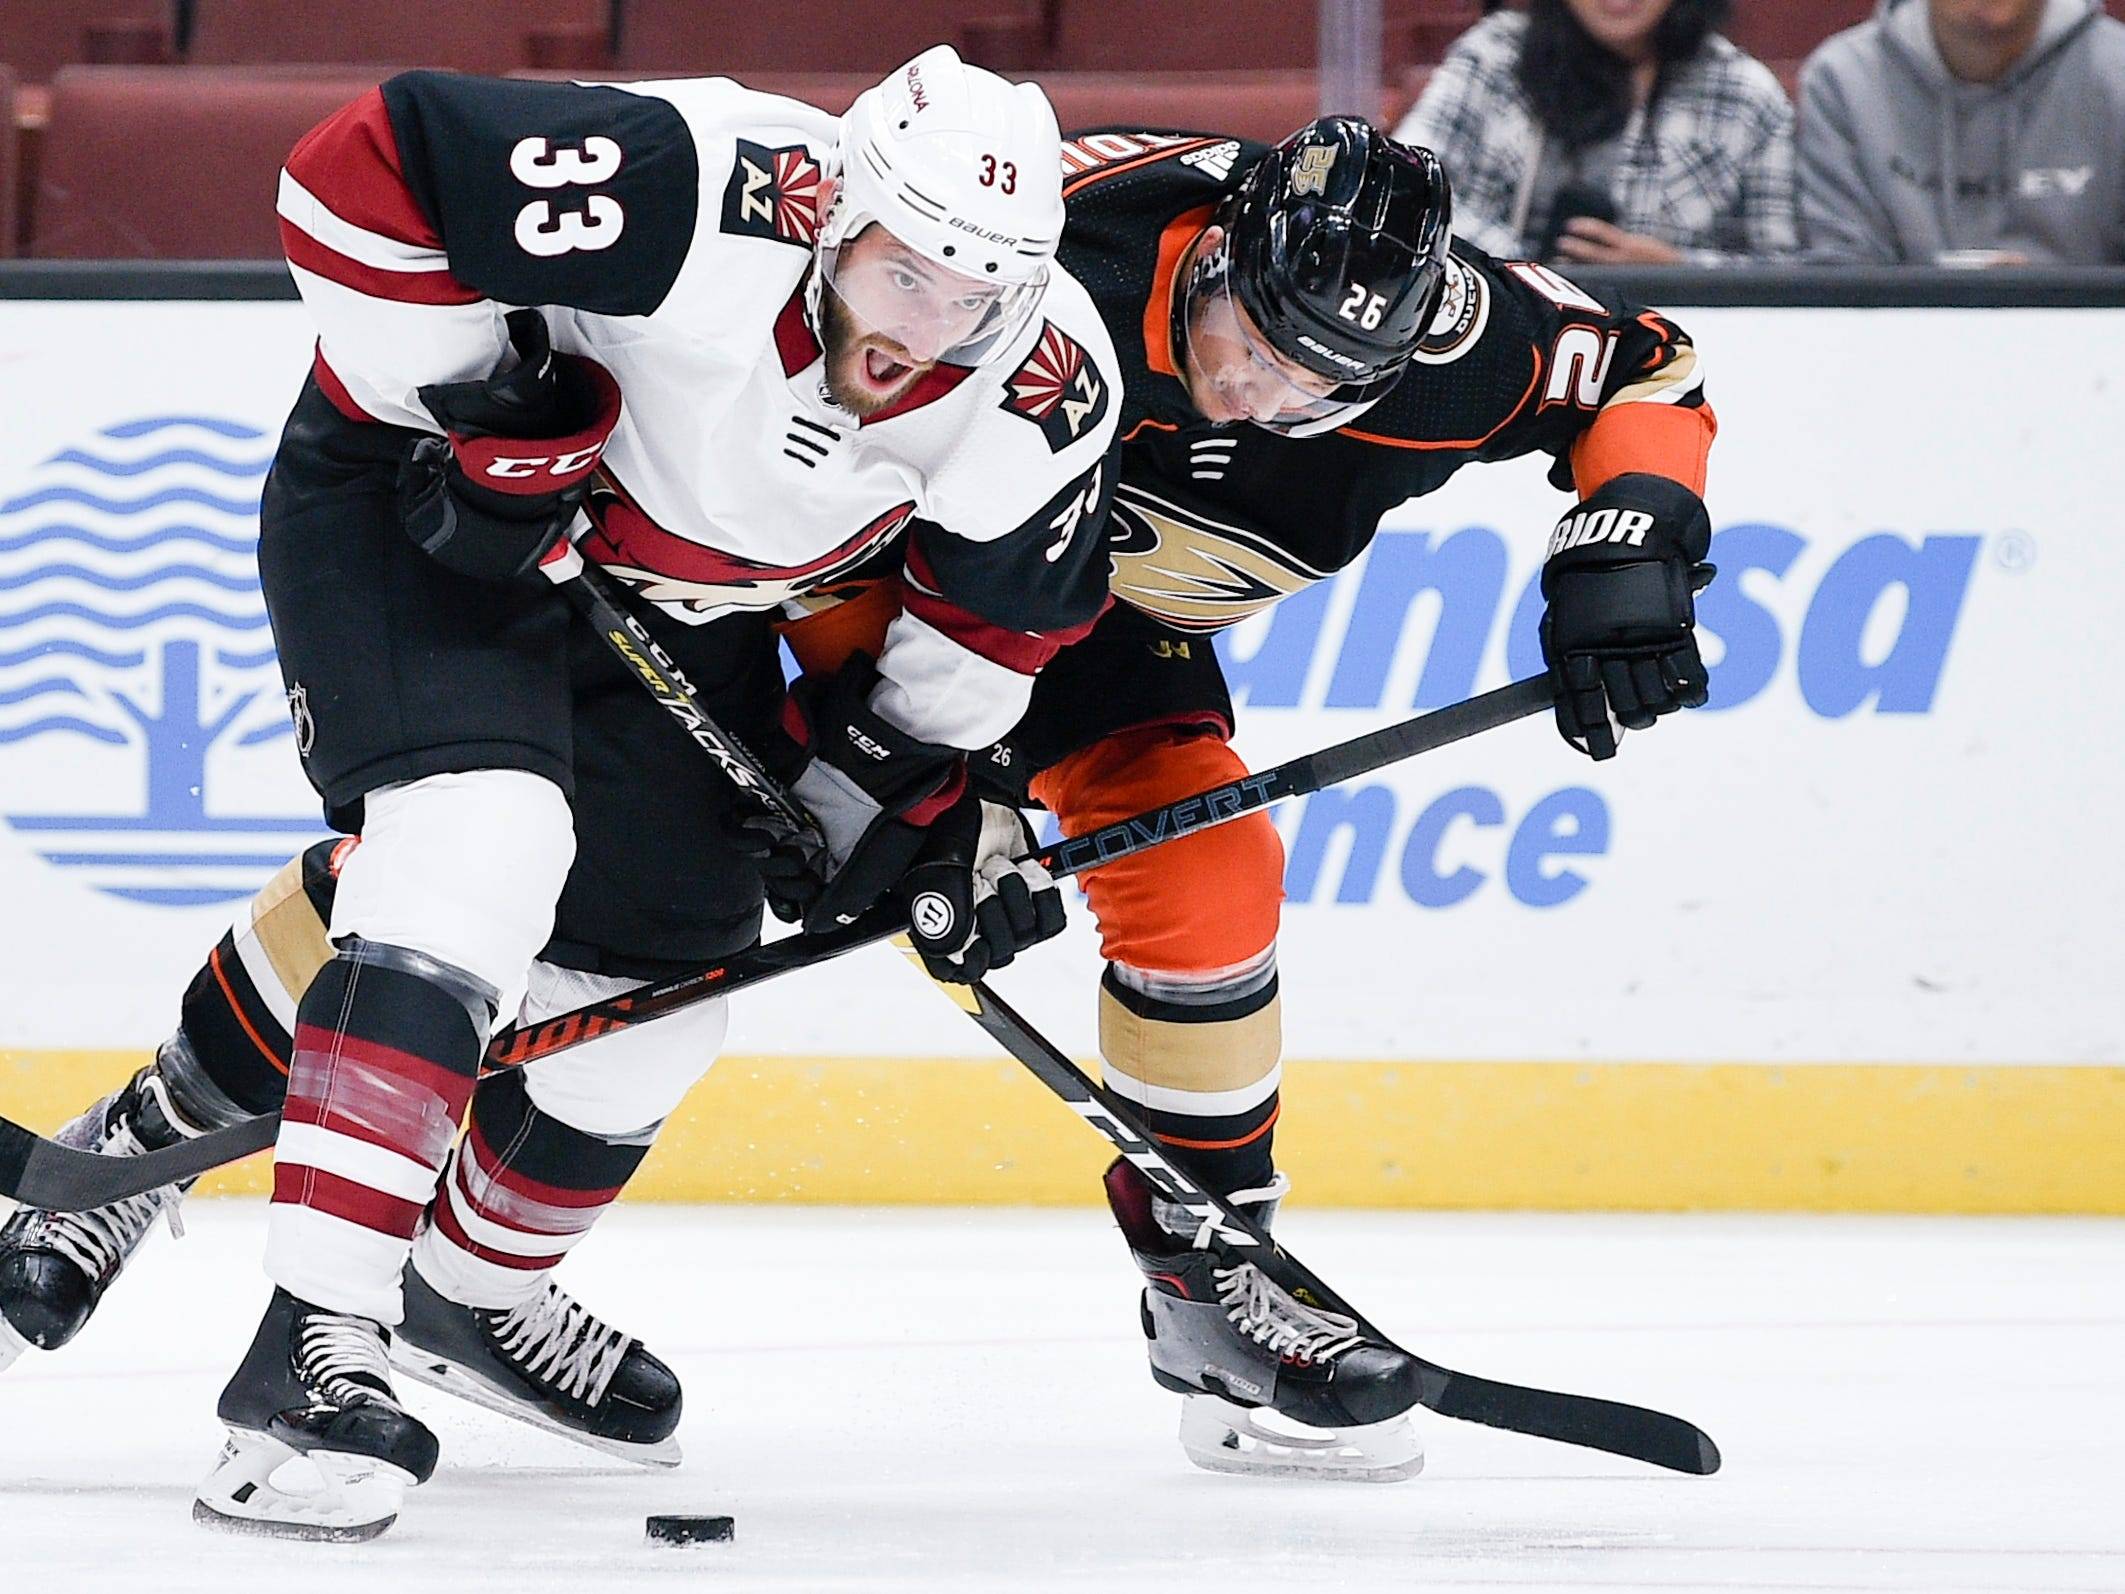 Oct 10, 2018; Anaheim, CA, USA; Anaheim Ducks defenseman Brandon Montour (26) and Arizona Coyotes defenseman Alex Goligoski (33) battle for the puck during the first period at Honda Center.